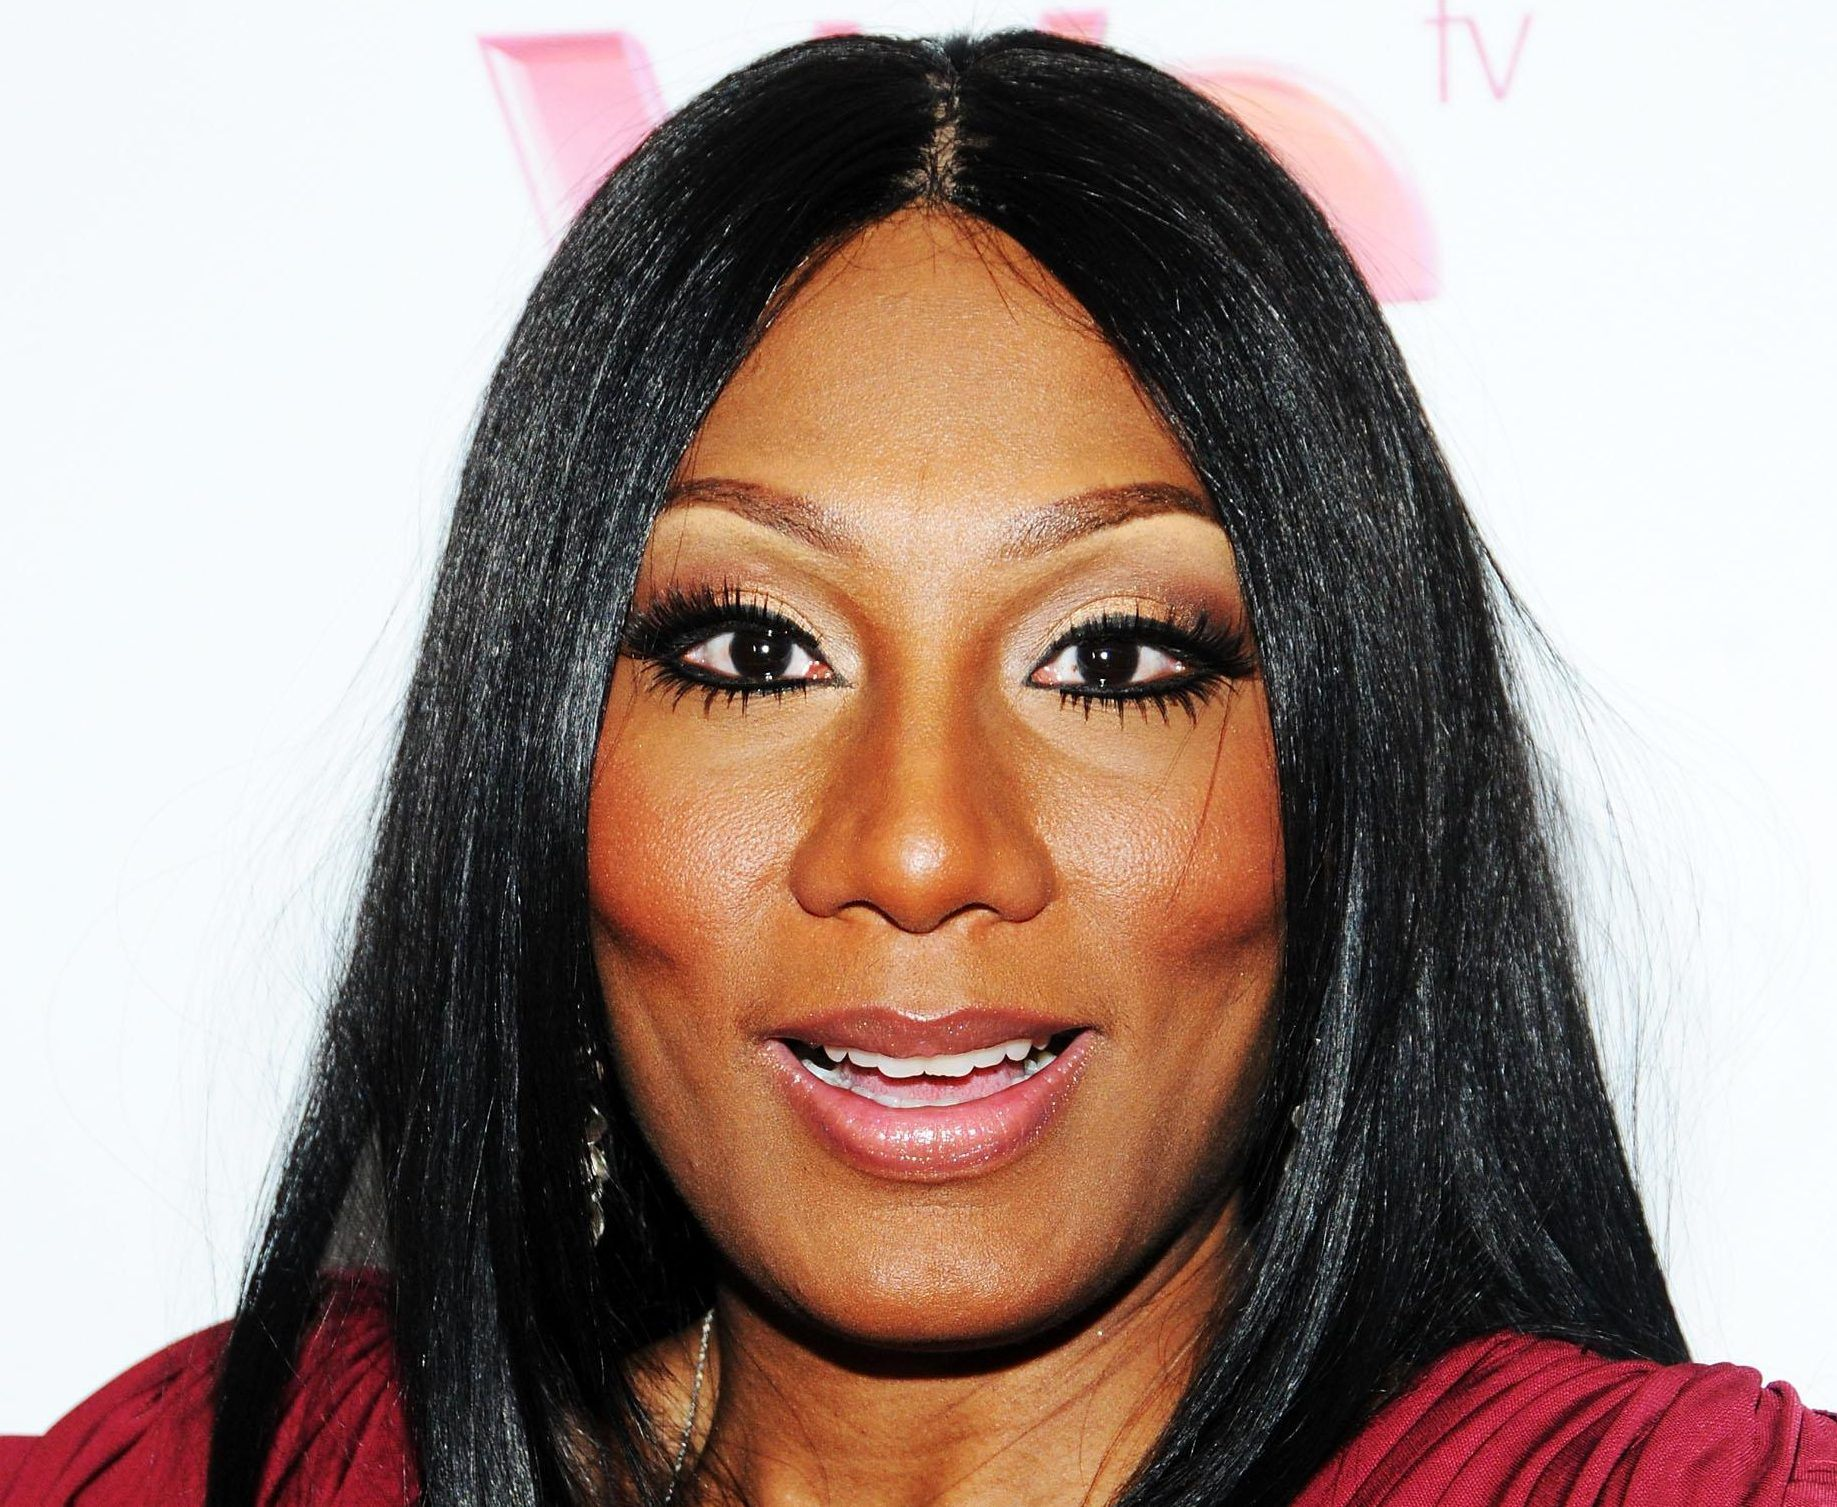 Towanda Braxton Addresses The Situation Between Tamar Braxton And David Adefeso And Says He's 'Gone Too Far' – See The Video